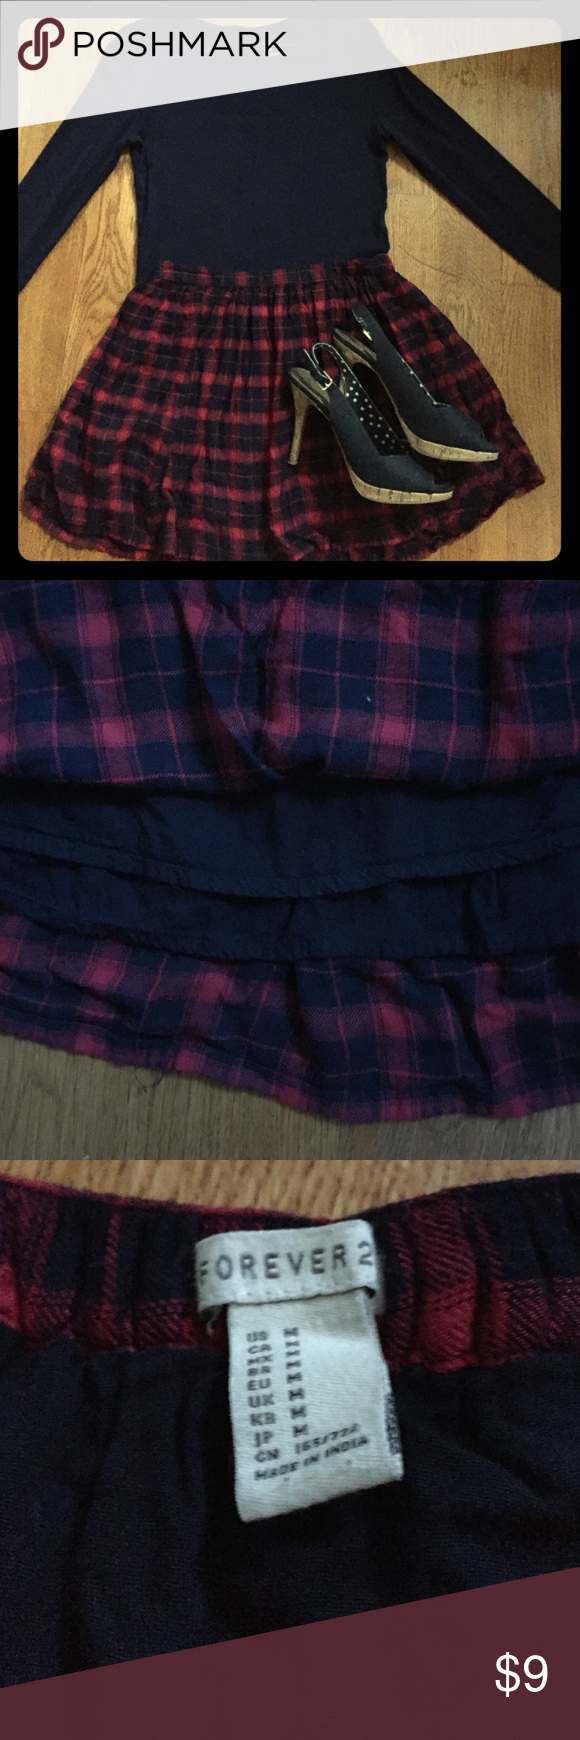 Red and Navy Plaid Skirt This skirt is adorable and comfortable. It has two layers of fabric and a partially elastic waistband. It's in great condition with no flaws. It's marked M, but I'm a S and it fits me, too. Heels also available in my closet. Comment with any questions. Forever 21 Skirts Mini